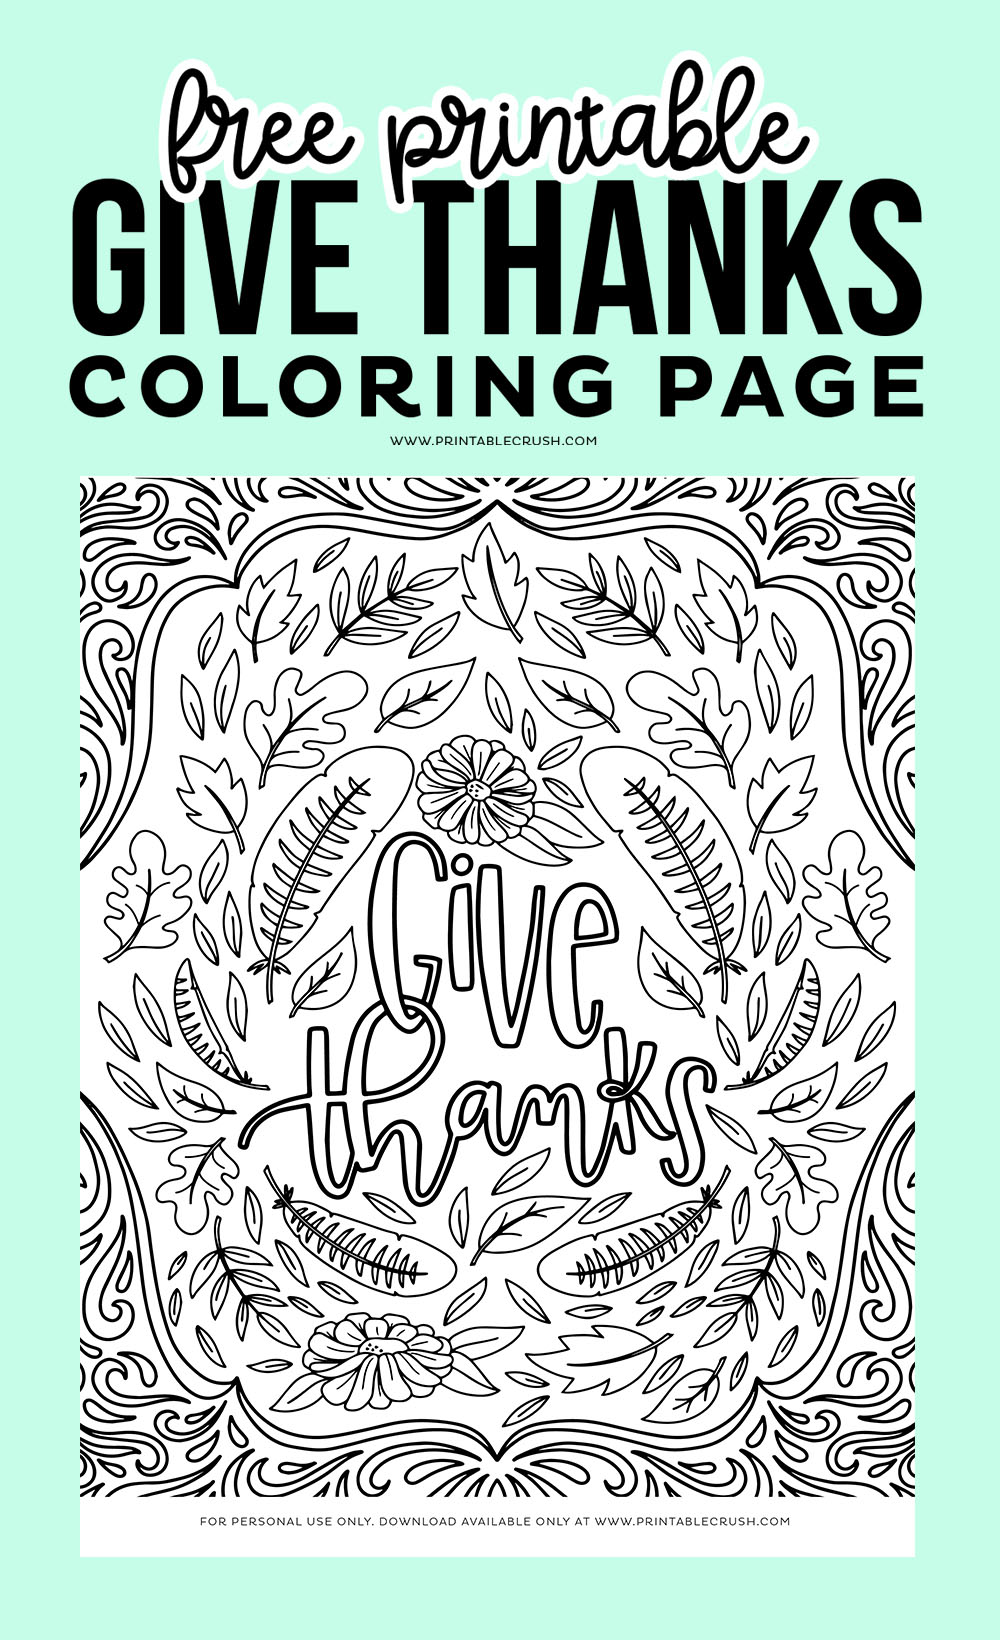 Give Thanks Coloring Page - Printable Crush